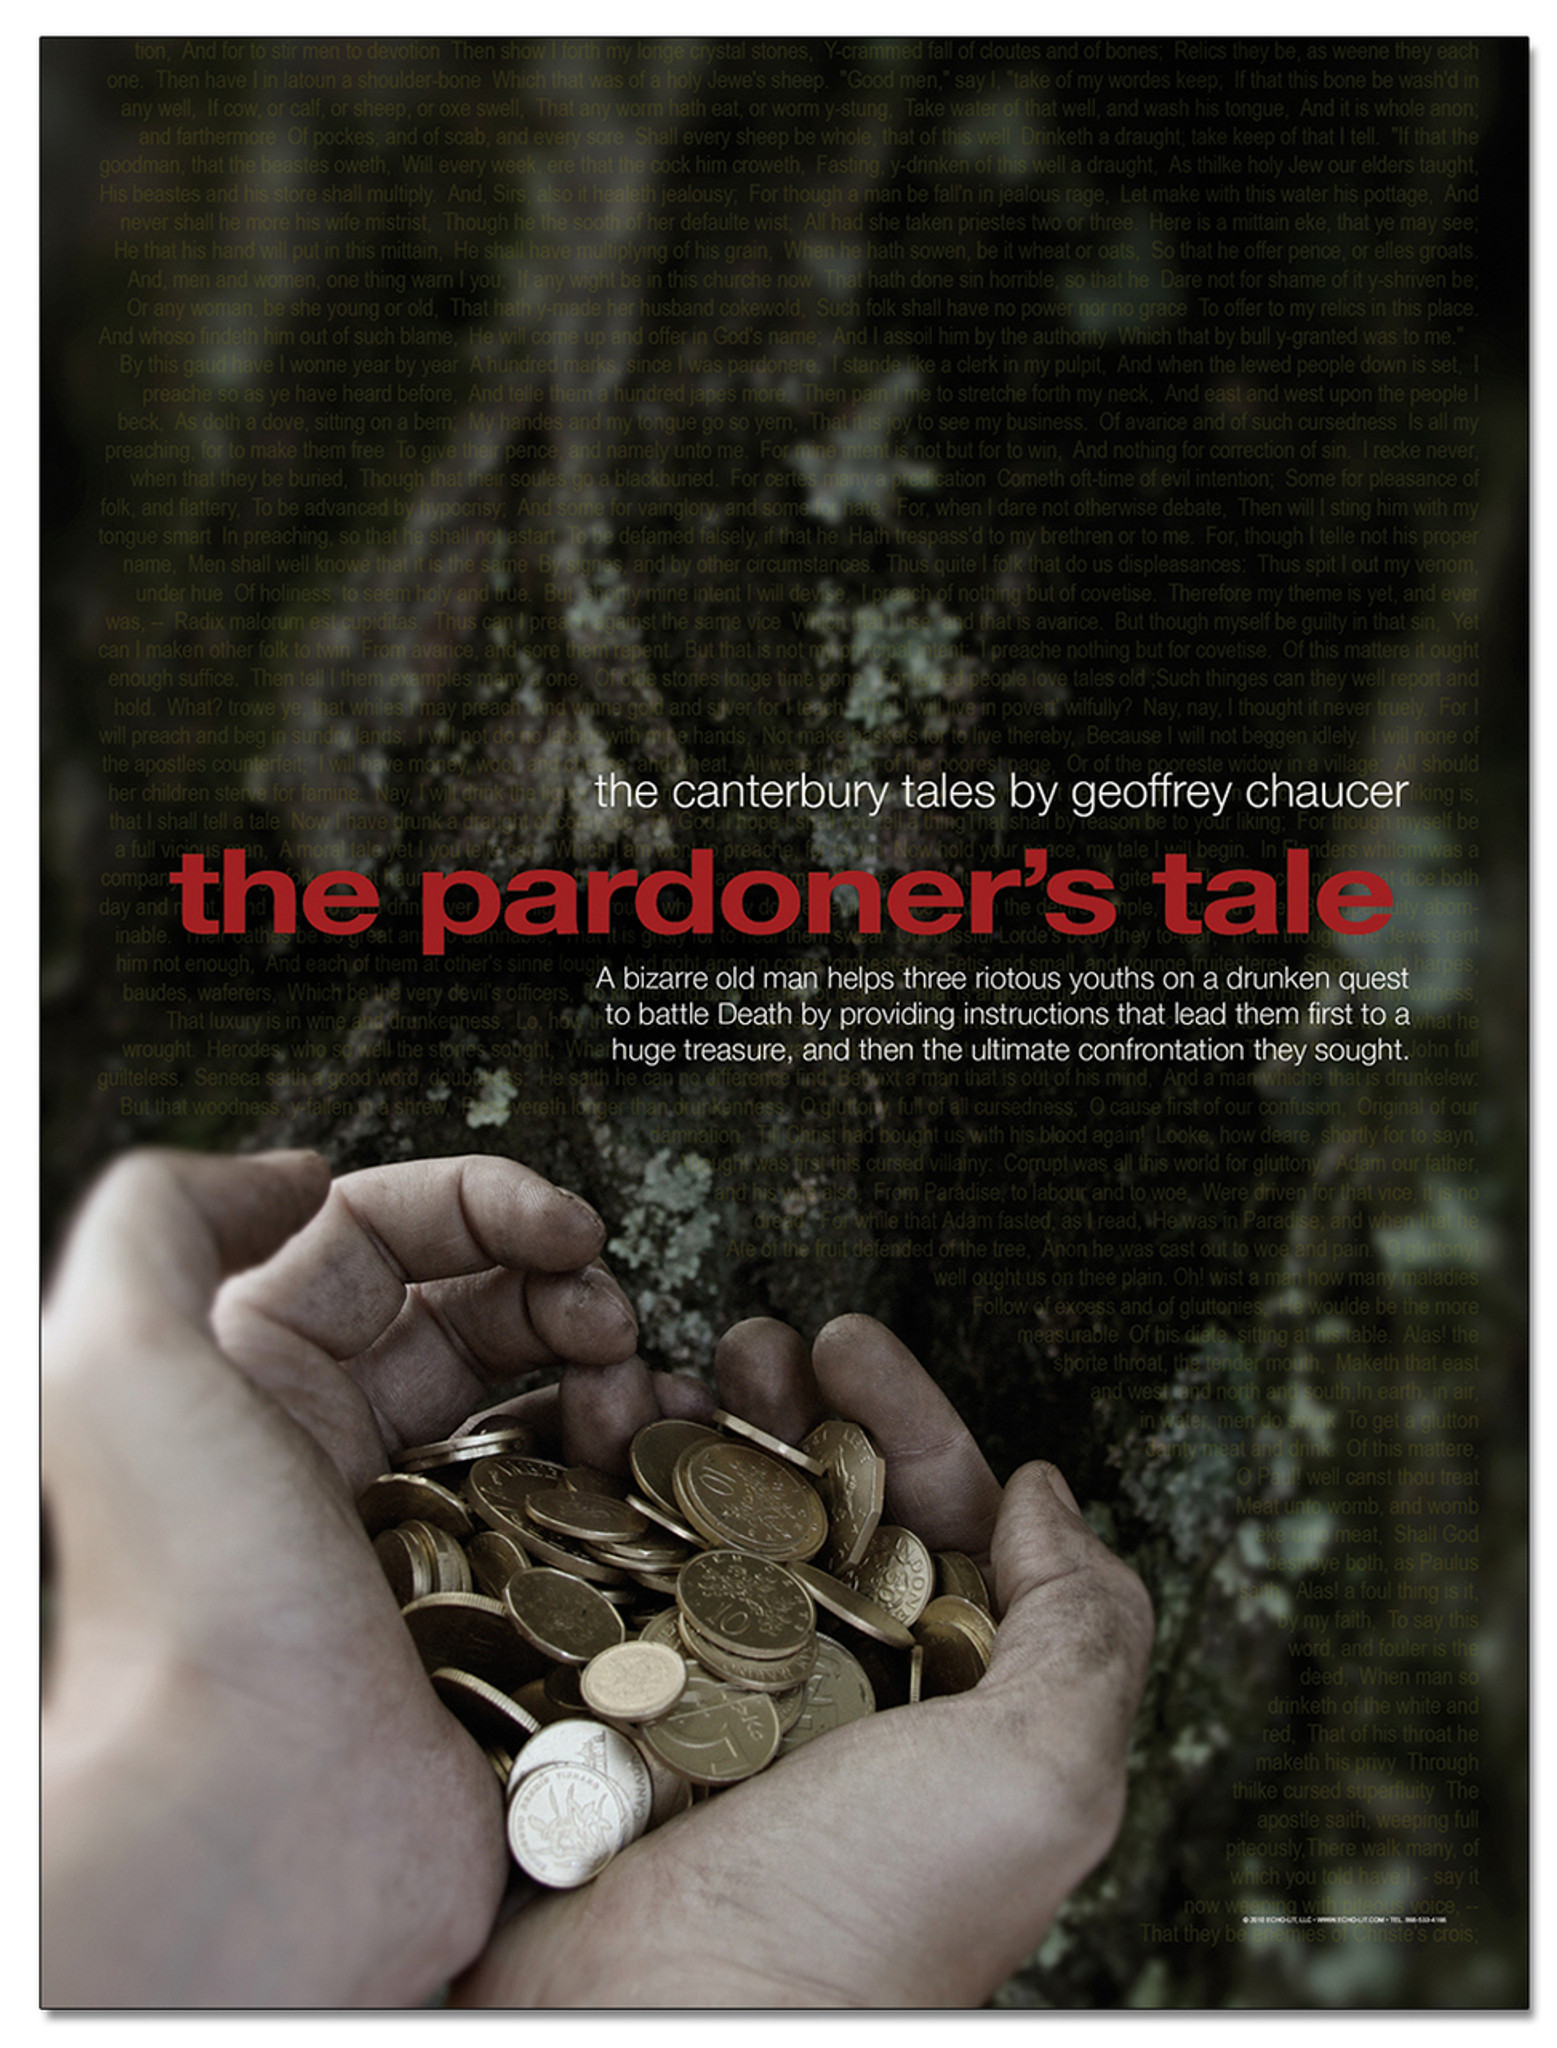 an analysis of the pardoners tale in the canterbury tales by geoffrey chaucer Literary analysis - greed depicted in chaucer's the pardoner's tale chaucer, geoffrey the canterbury tales study guide : summary and analysis of the pardoner's tale | gradesaver in the case of the pardoners tale.